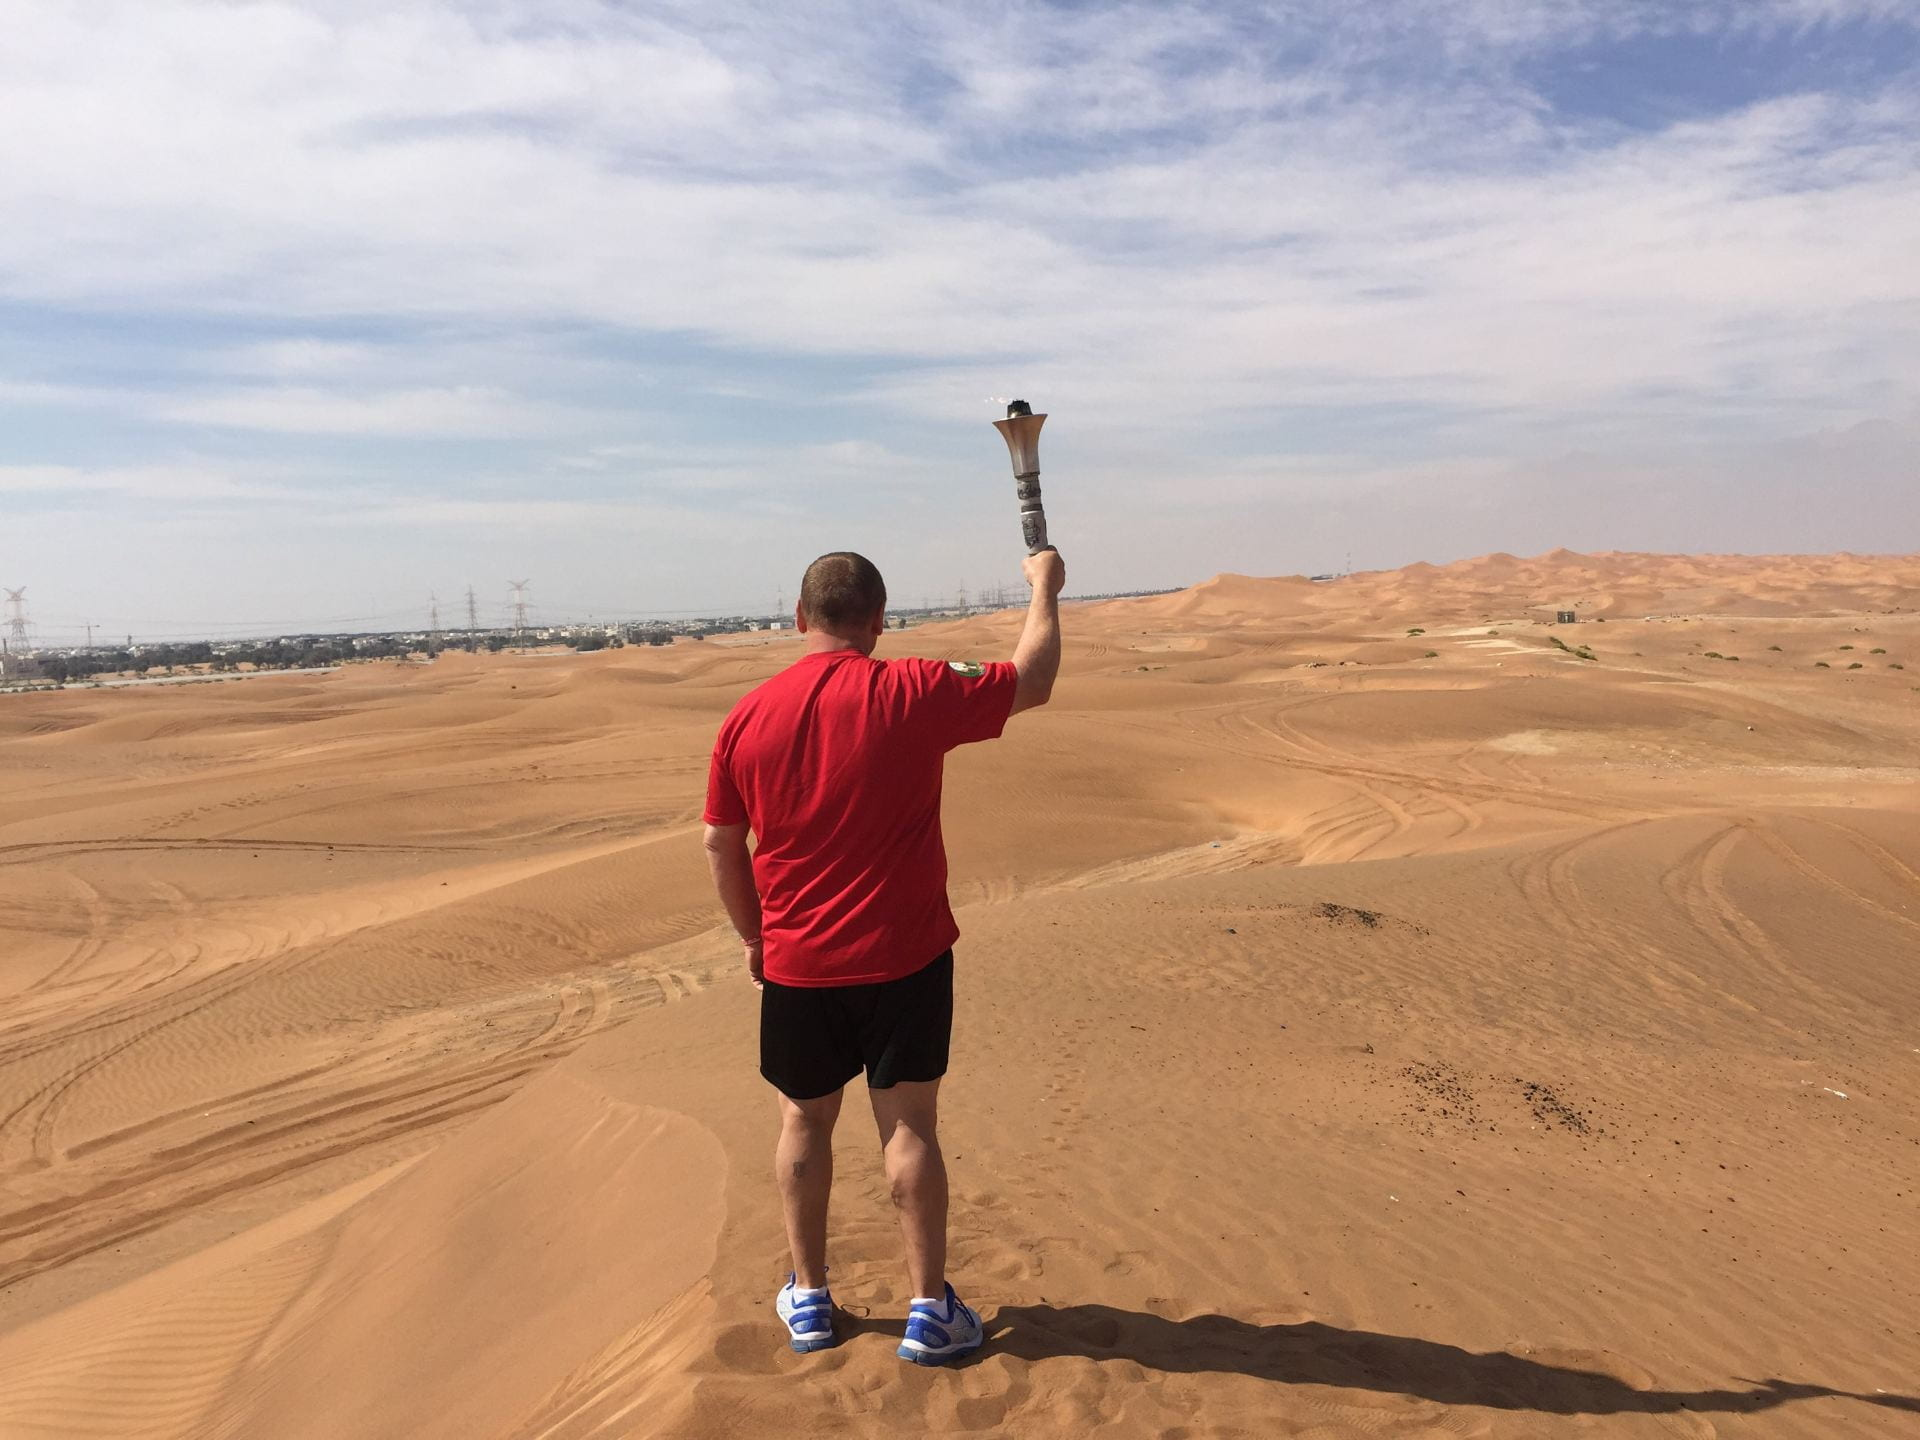 Scott Teal stands in the middle of a desert, wearing a red shirt. With his back to the camera, he holds us the Olympic Torch he will carry during the Law Enforcement Torch Run.